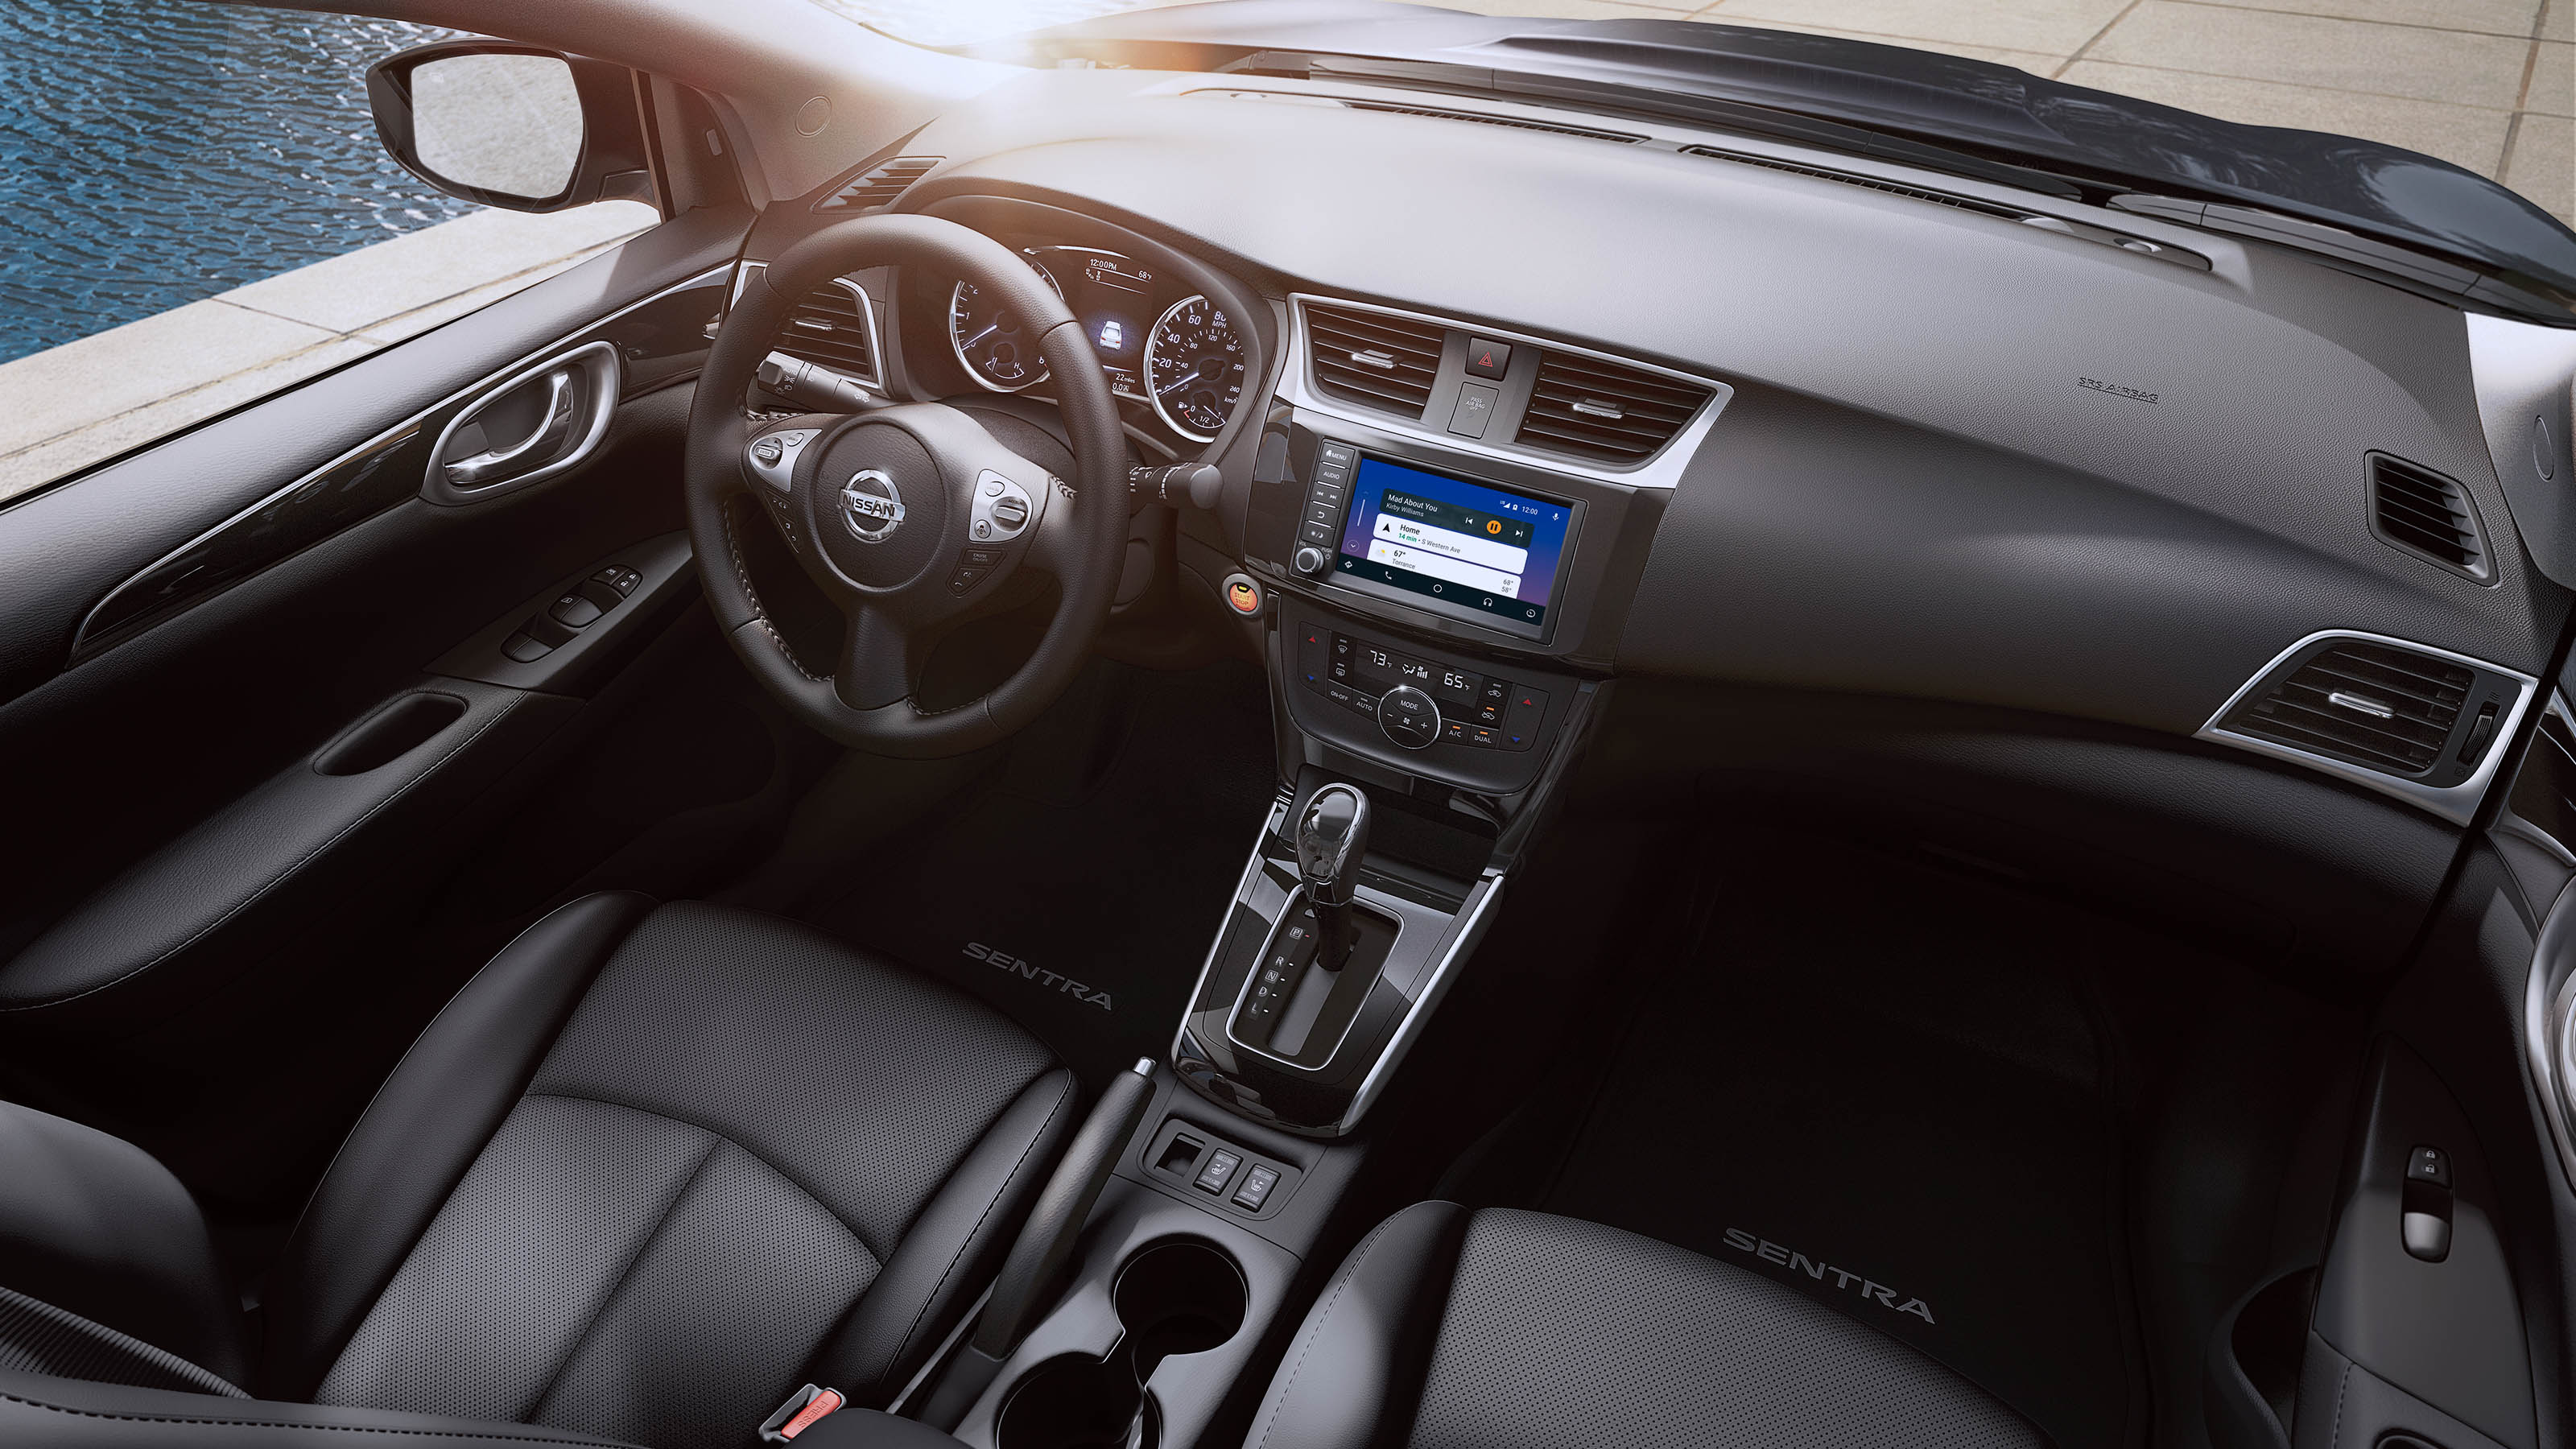 Interior of the 2019 Nissan Sentra